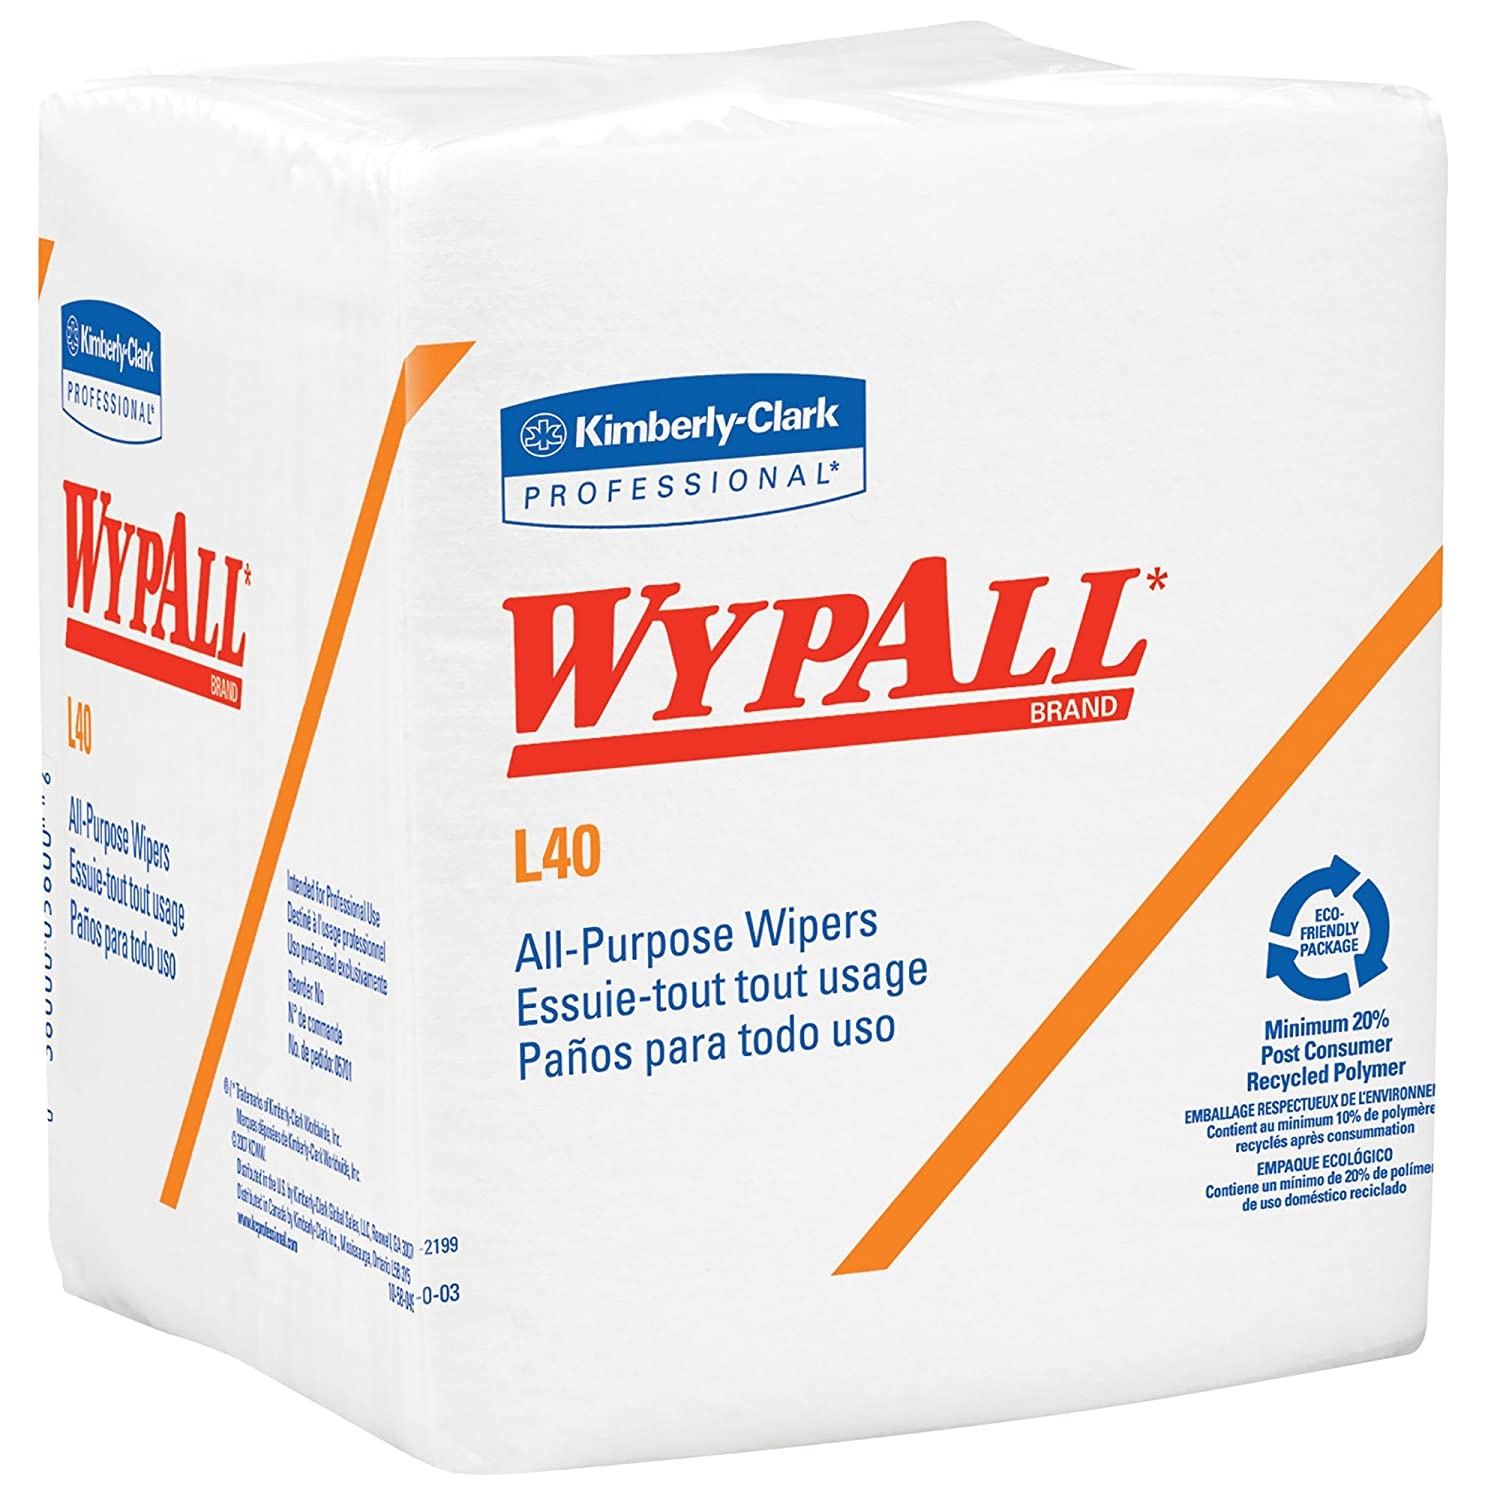 WypAll 7471 L40 Wipers, White, One Ply Sheets, 18 Packs x 56 Folded Kimberly-Clark Professional (EU) 5701